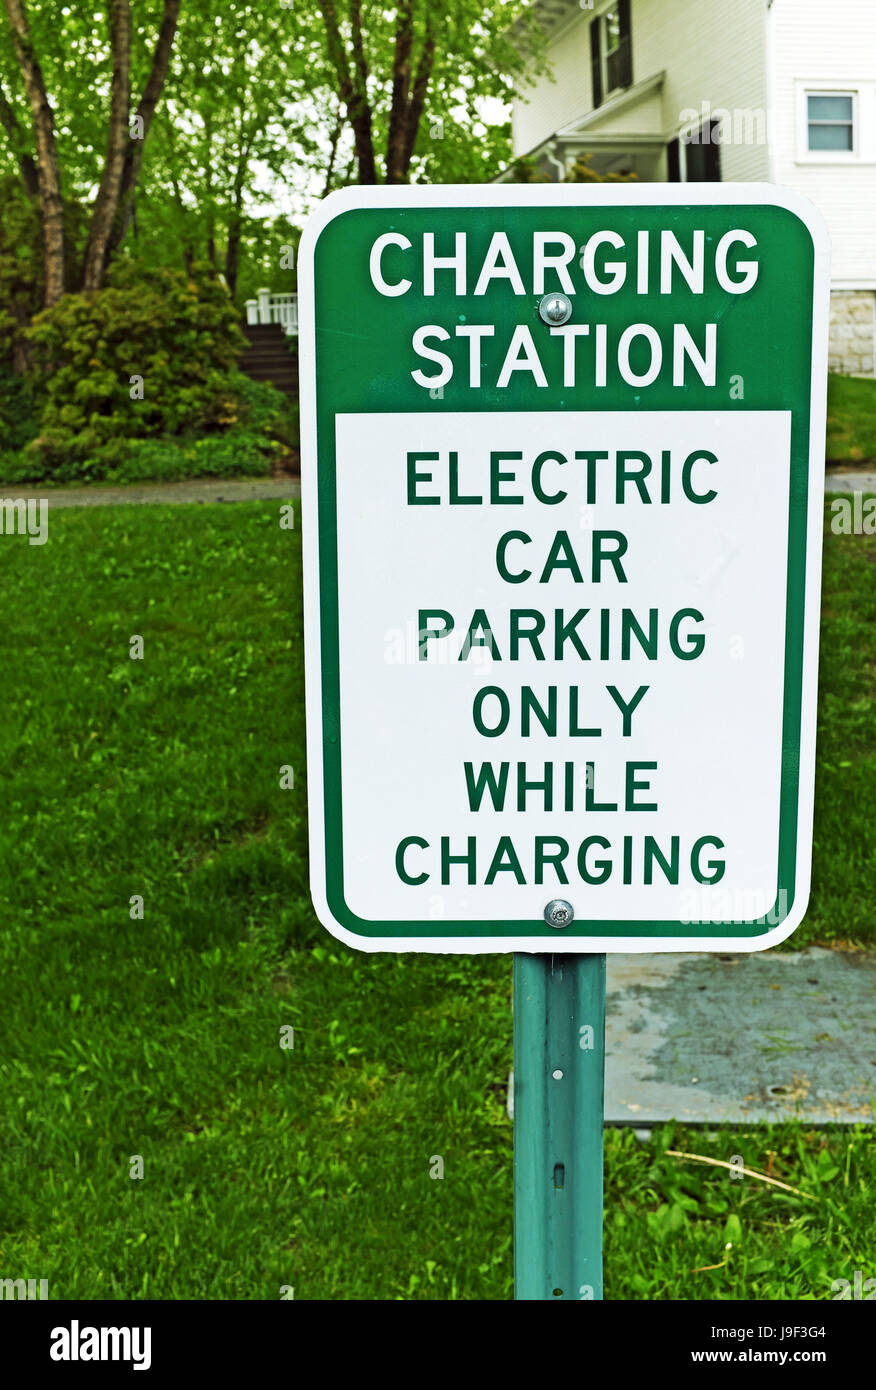 Charging Station Sign Indicating Parking For Electric Cars Only